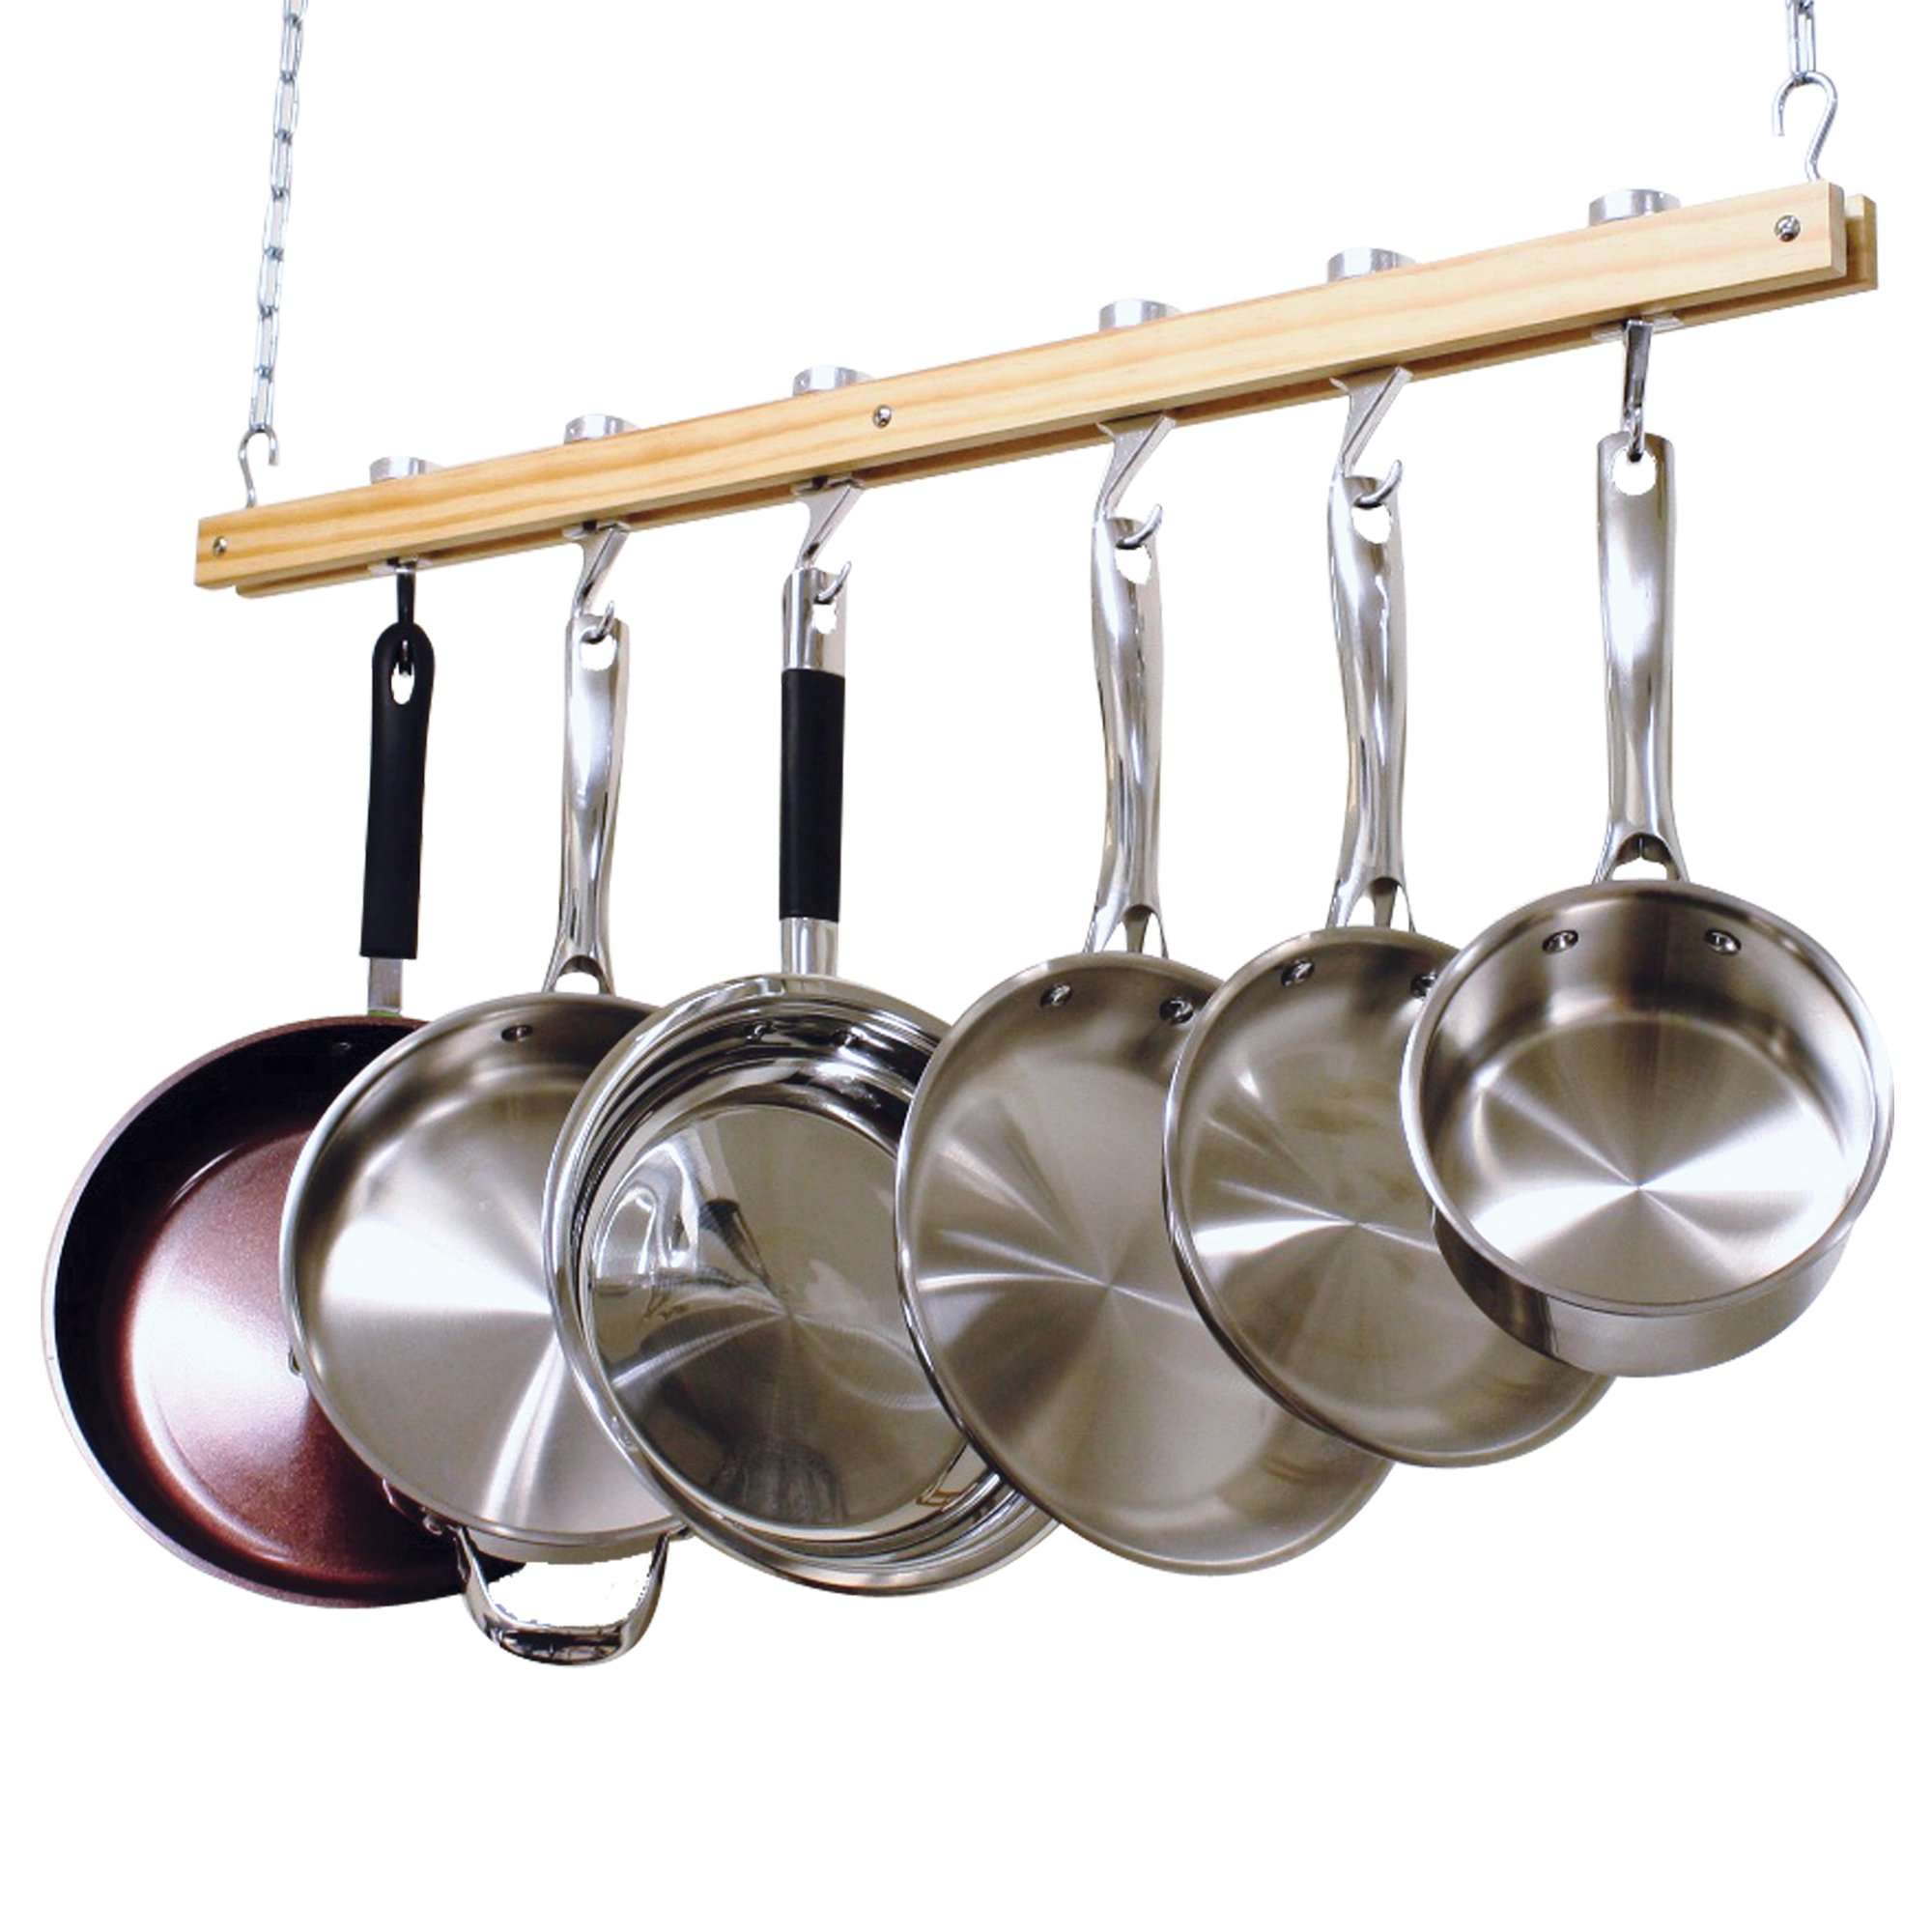 Cooks Standard NC-00269 Single Bar, 36-Inch Ceiling Mounted Wooden Pot Rack, Brown by Cooks Standard